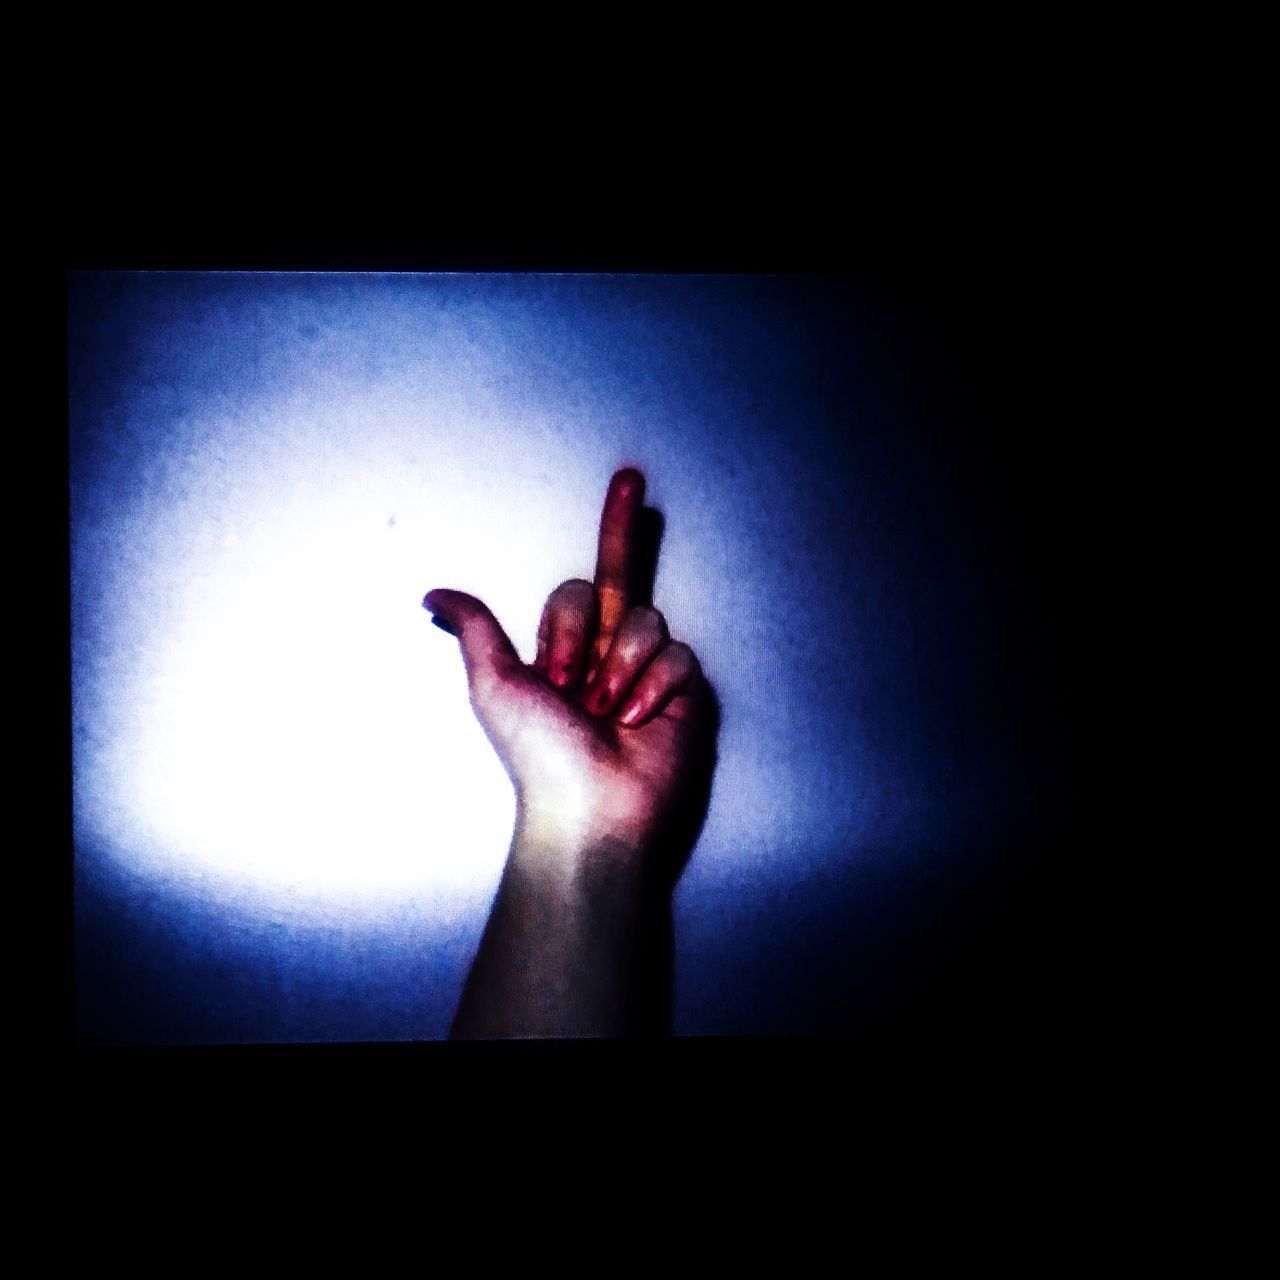 human hand, human finger, human body part, indoors, one person, real people, gesturing, touching, studio shot, blue, women, close-up, day, people, adult, adults only